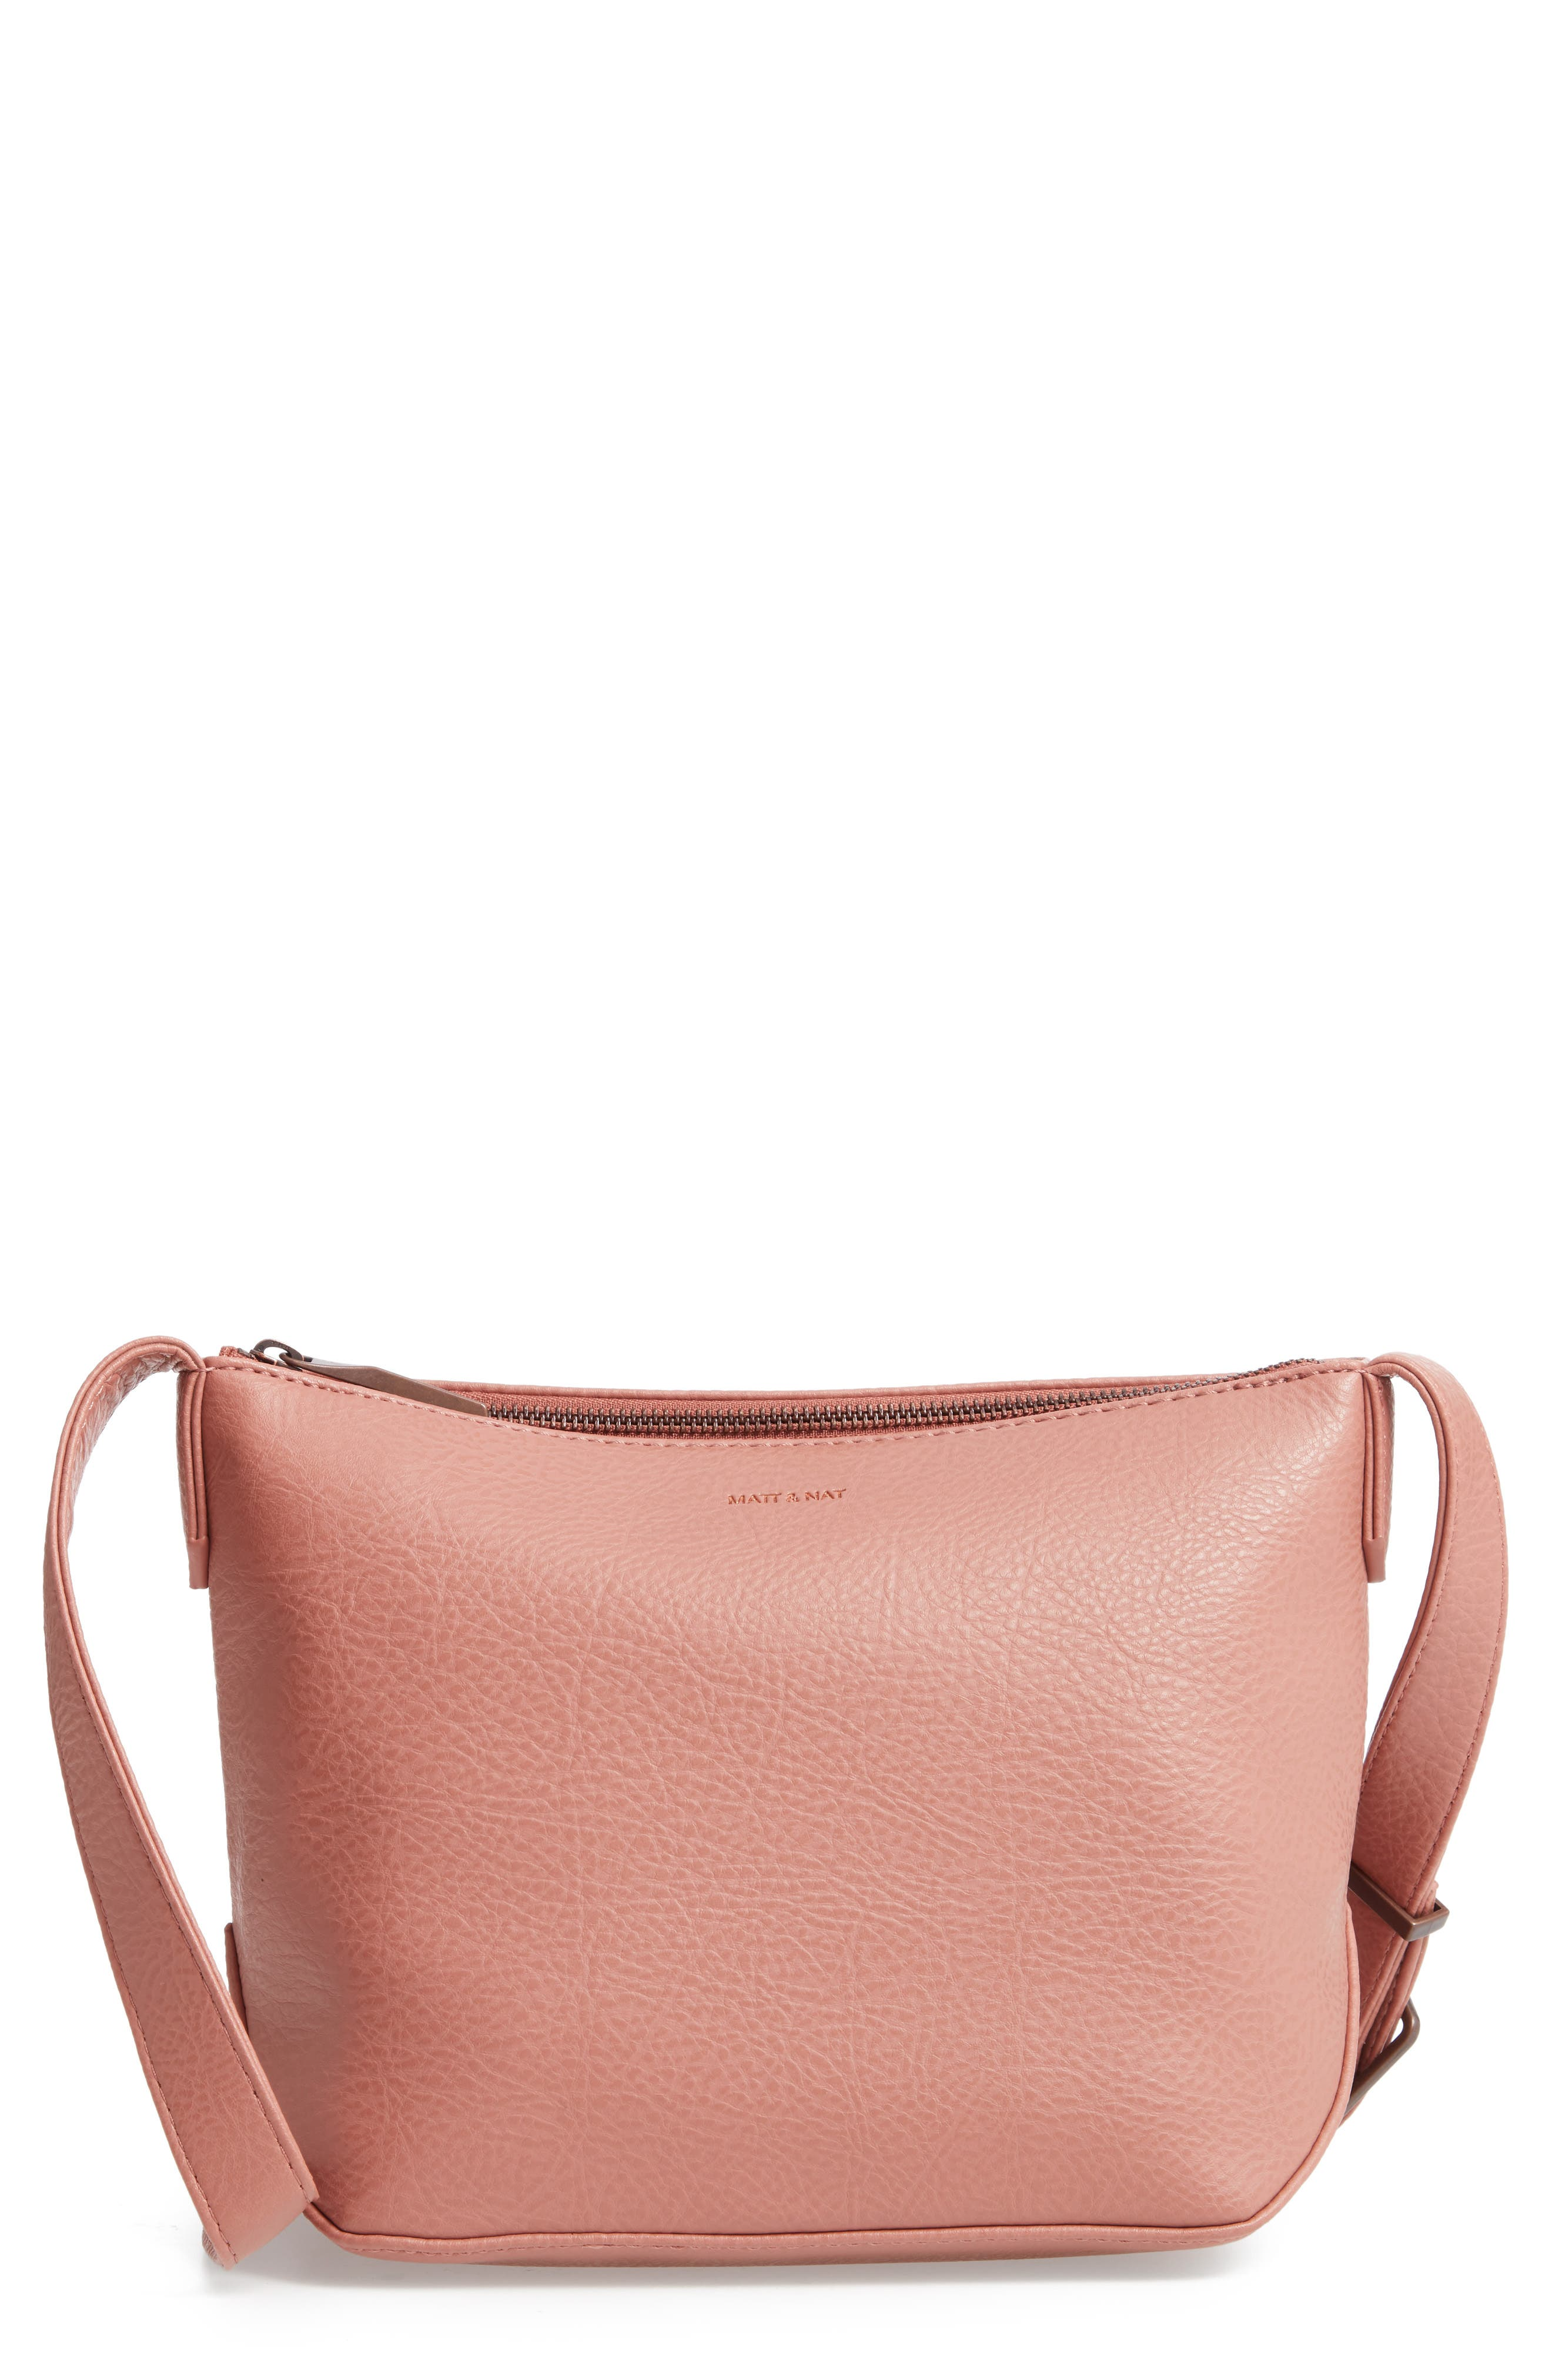 MATT & NAT Large Sam Faux Leather Crossbody Bag - Pink in Clay